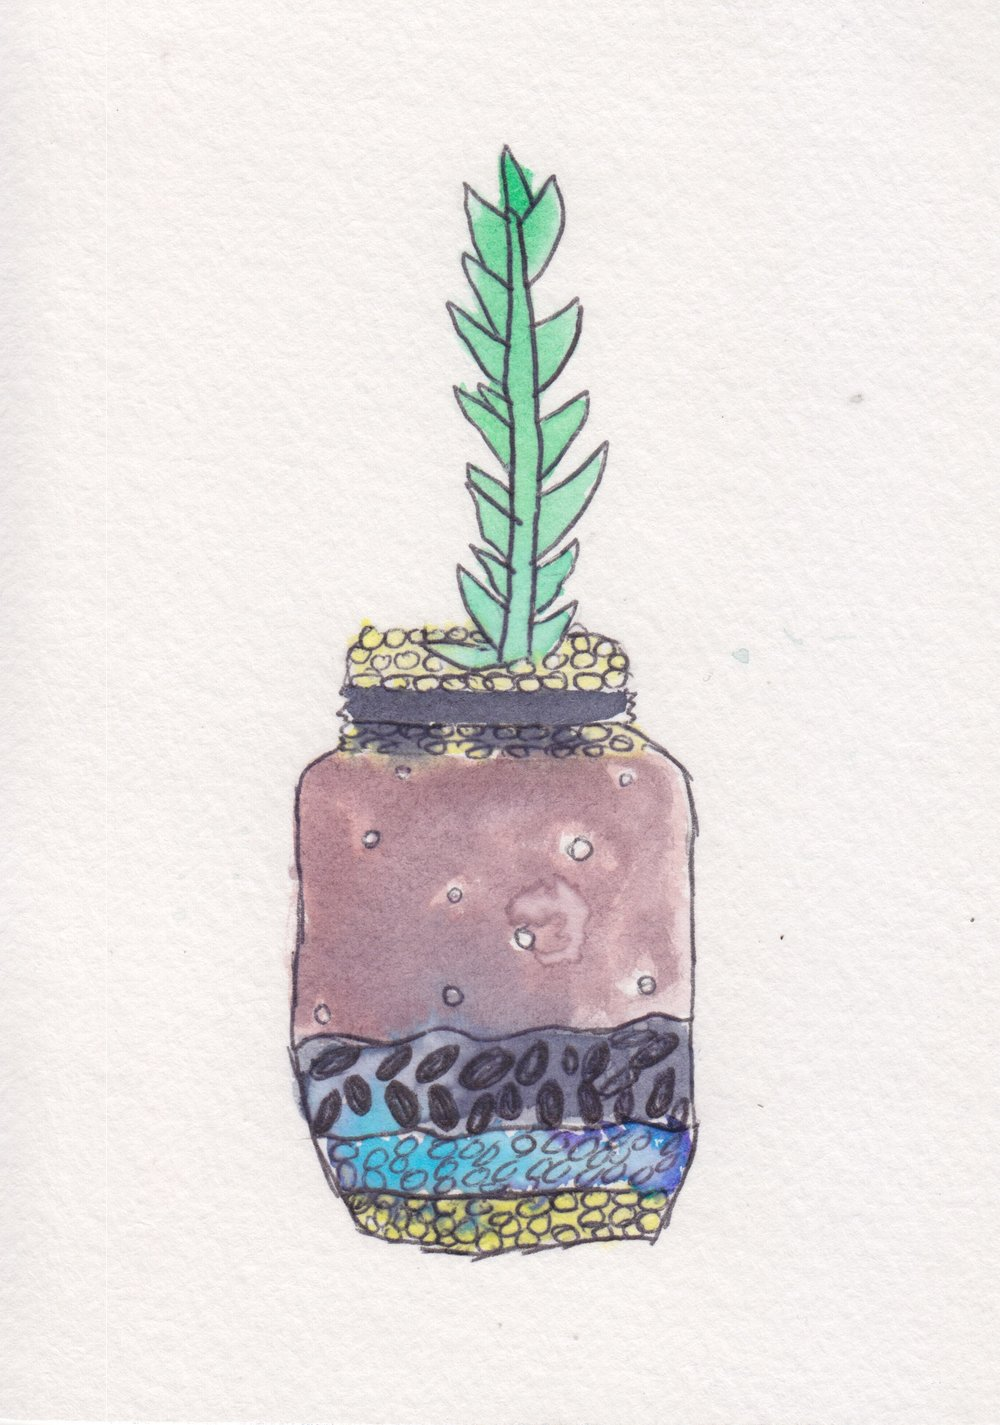 centro_watercolor terrarium_NicoleSaez02.jpeg